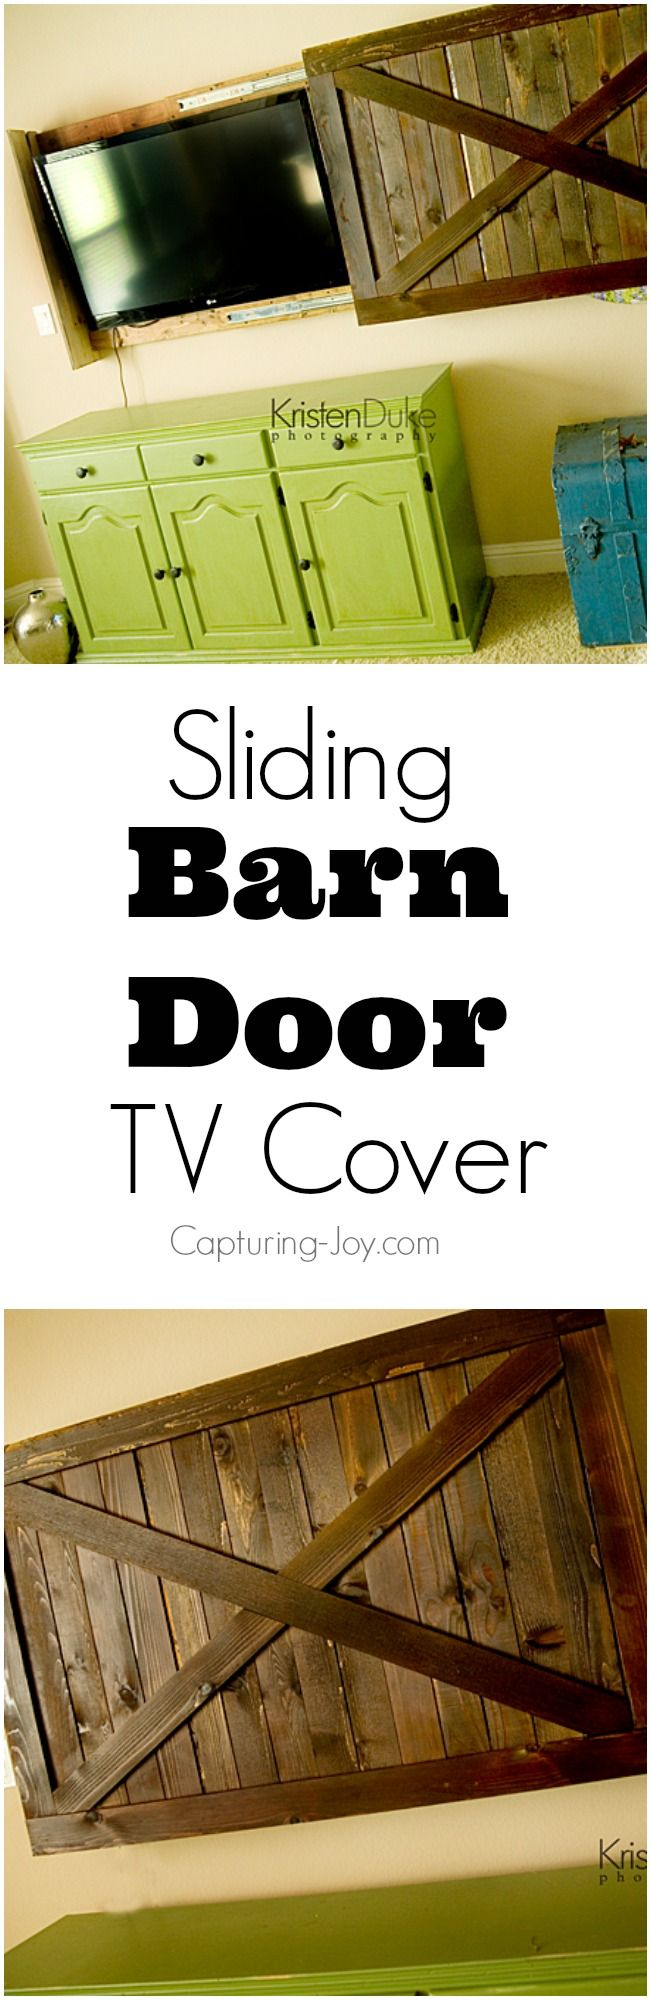 Cover your TV when it isn't in use!